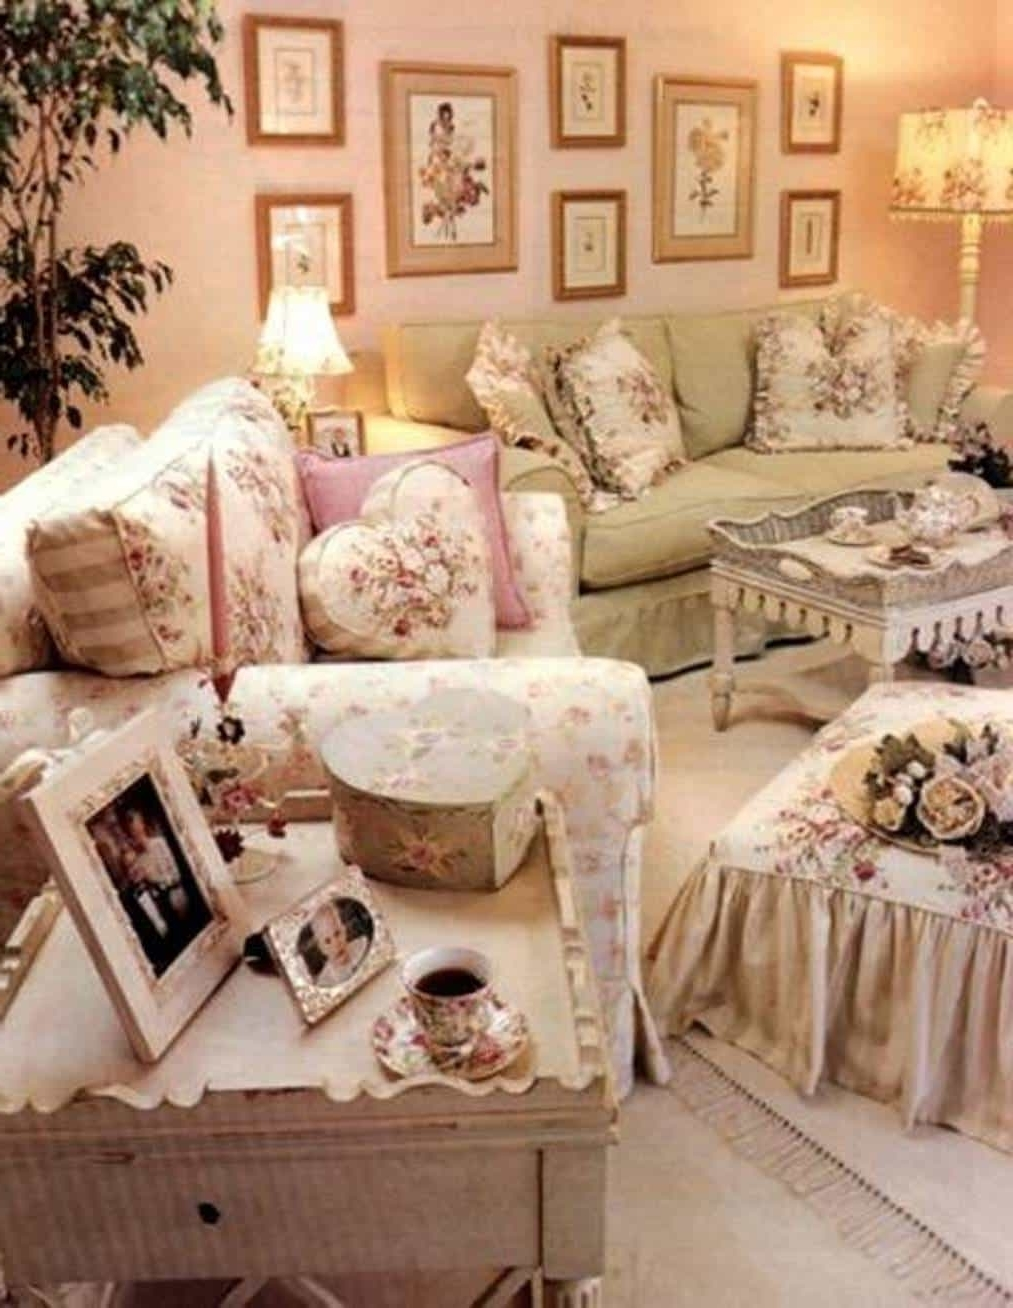 Country Style Wall Art Pertaining To Current Country Shabby Chic Style Living Room With Wall Art And Pillows (View 7 of 15)